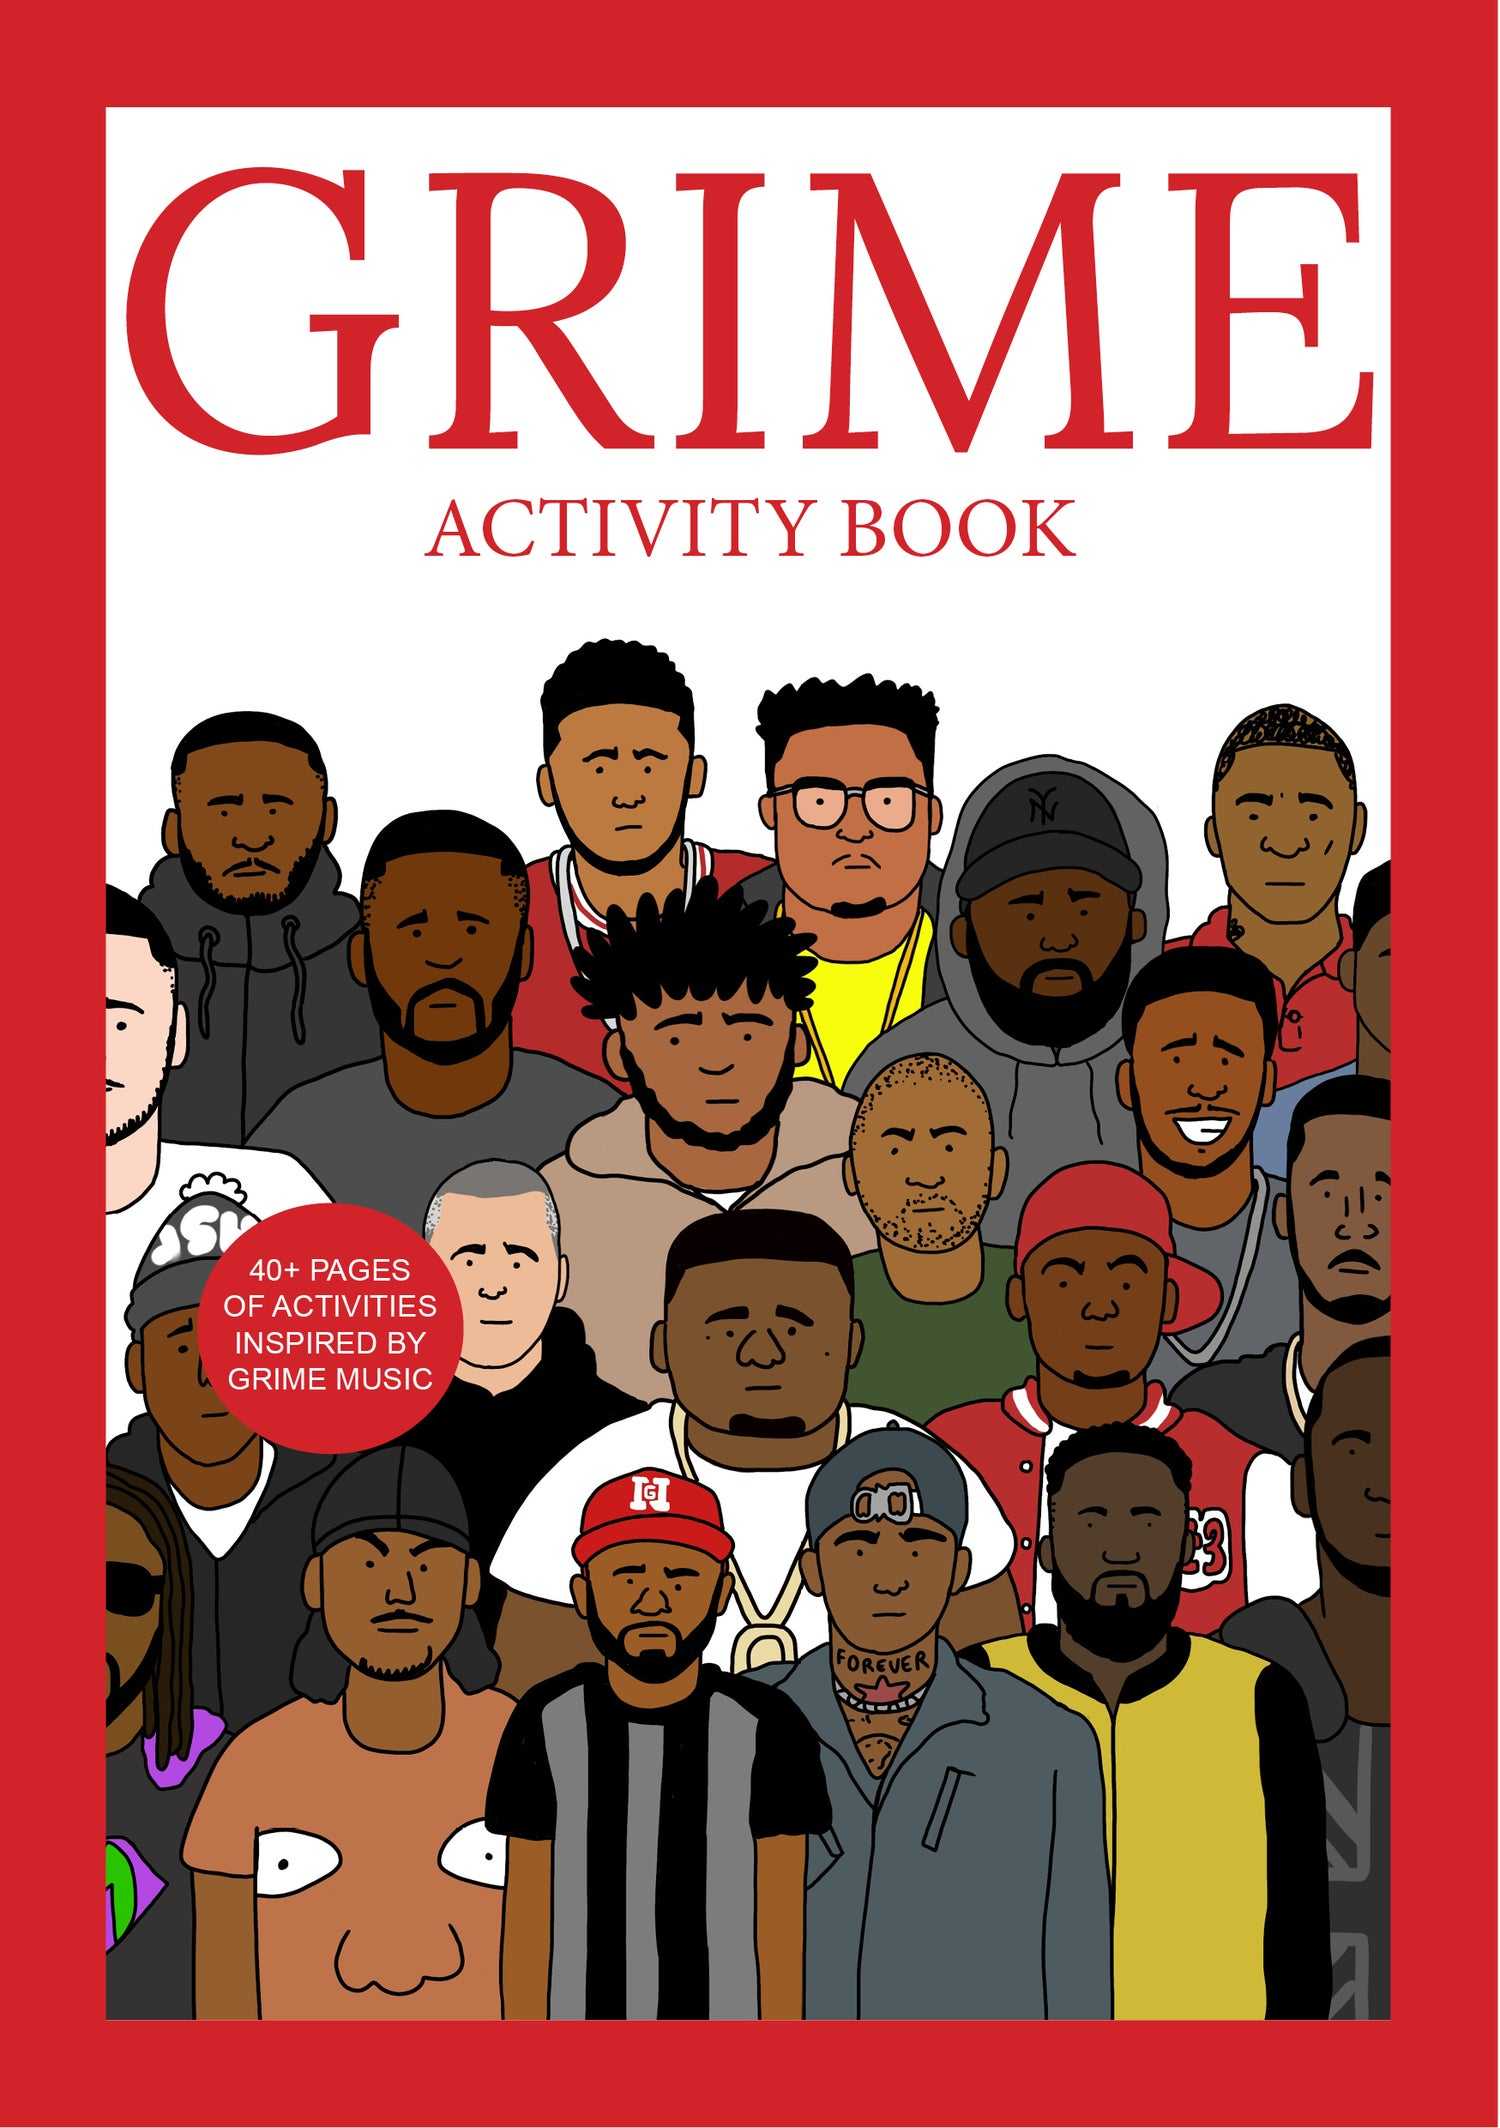 Image of The Grime Activity Book